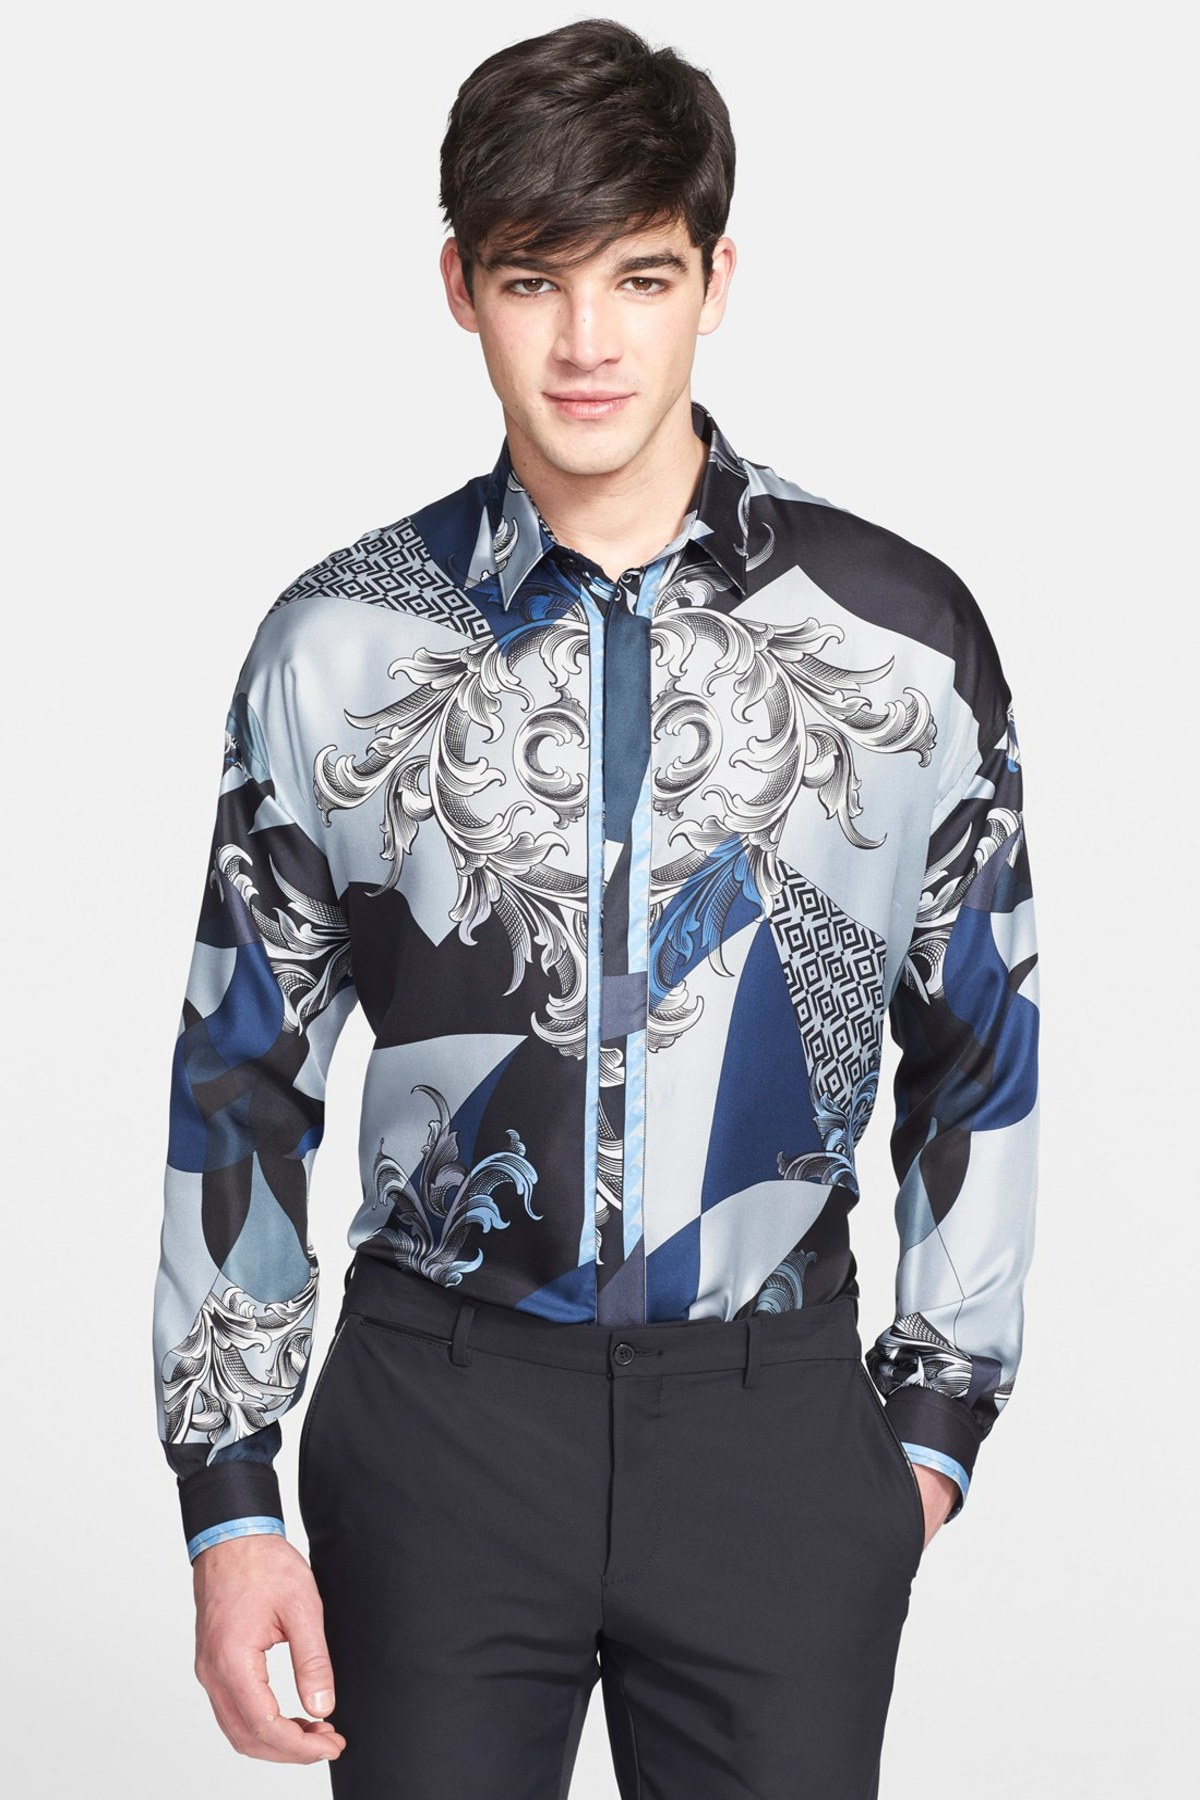 Shop discounted mens versace shirts & more on smashingprogrammsrj.tk Save money on millions of top products at low prices, worldwide for over 10 years.